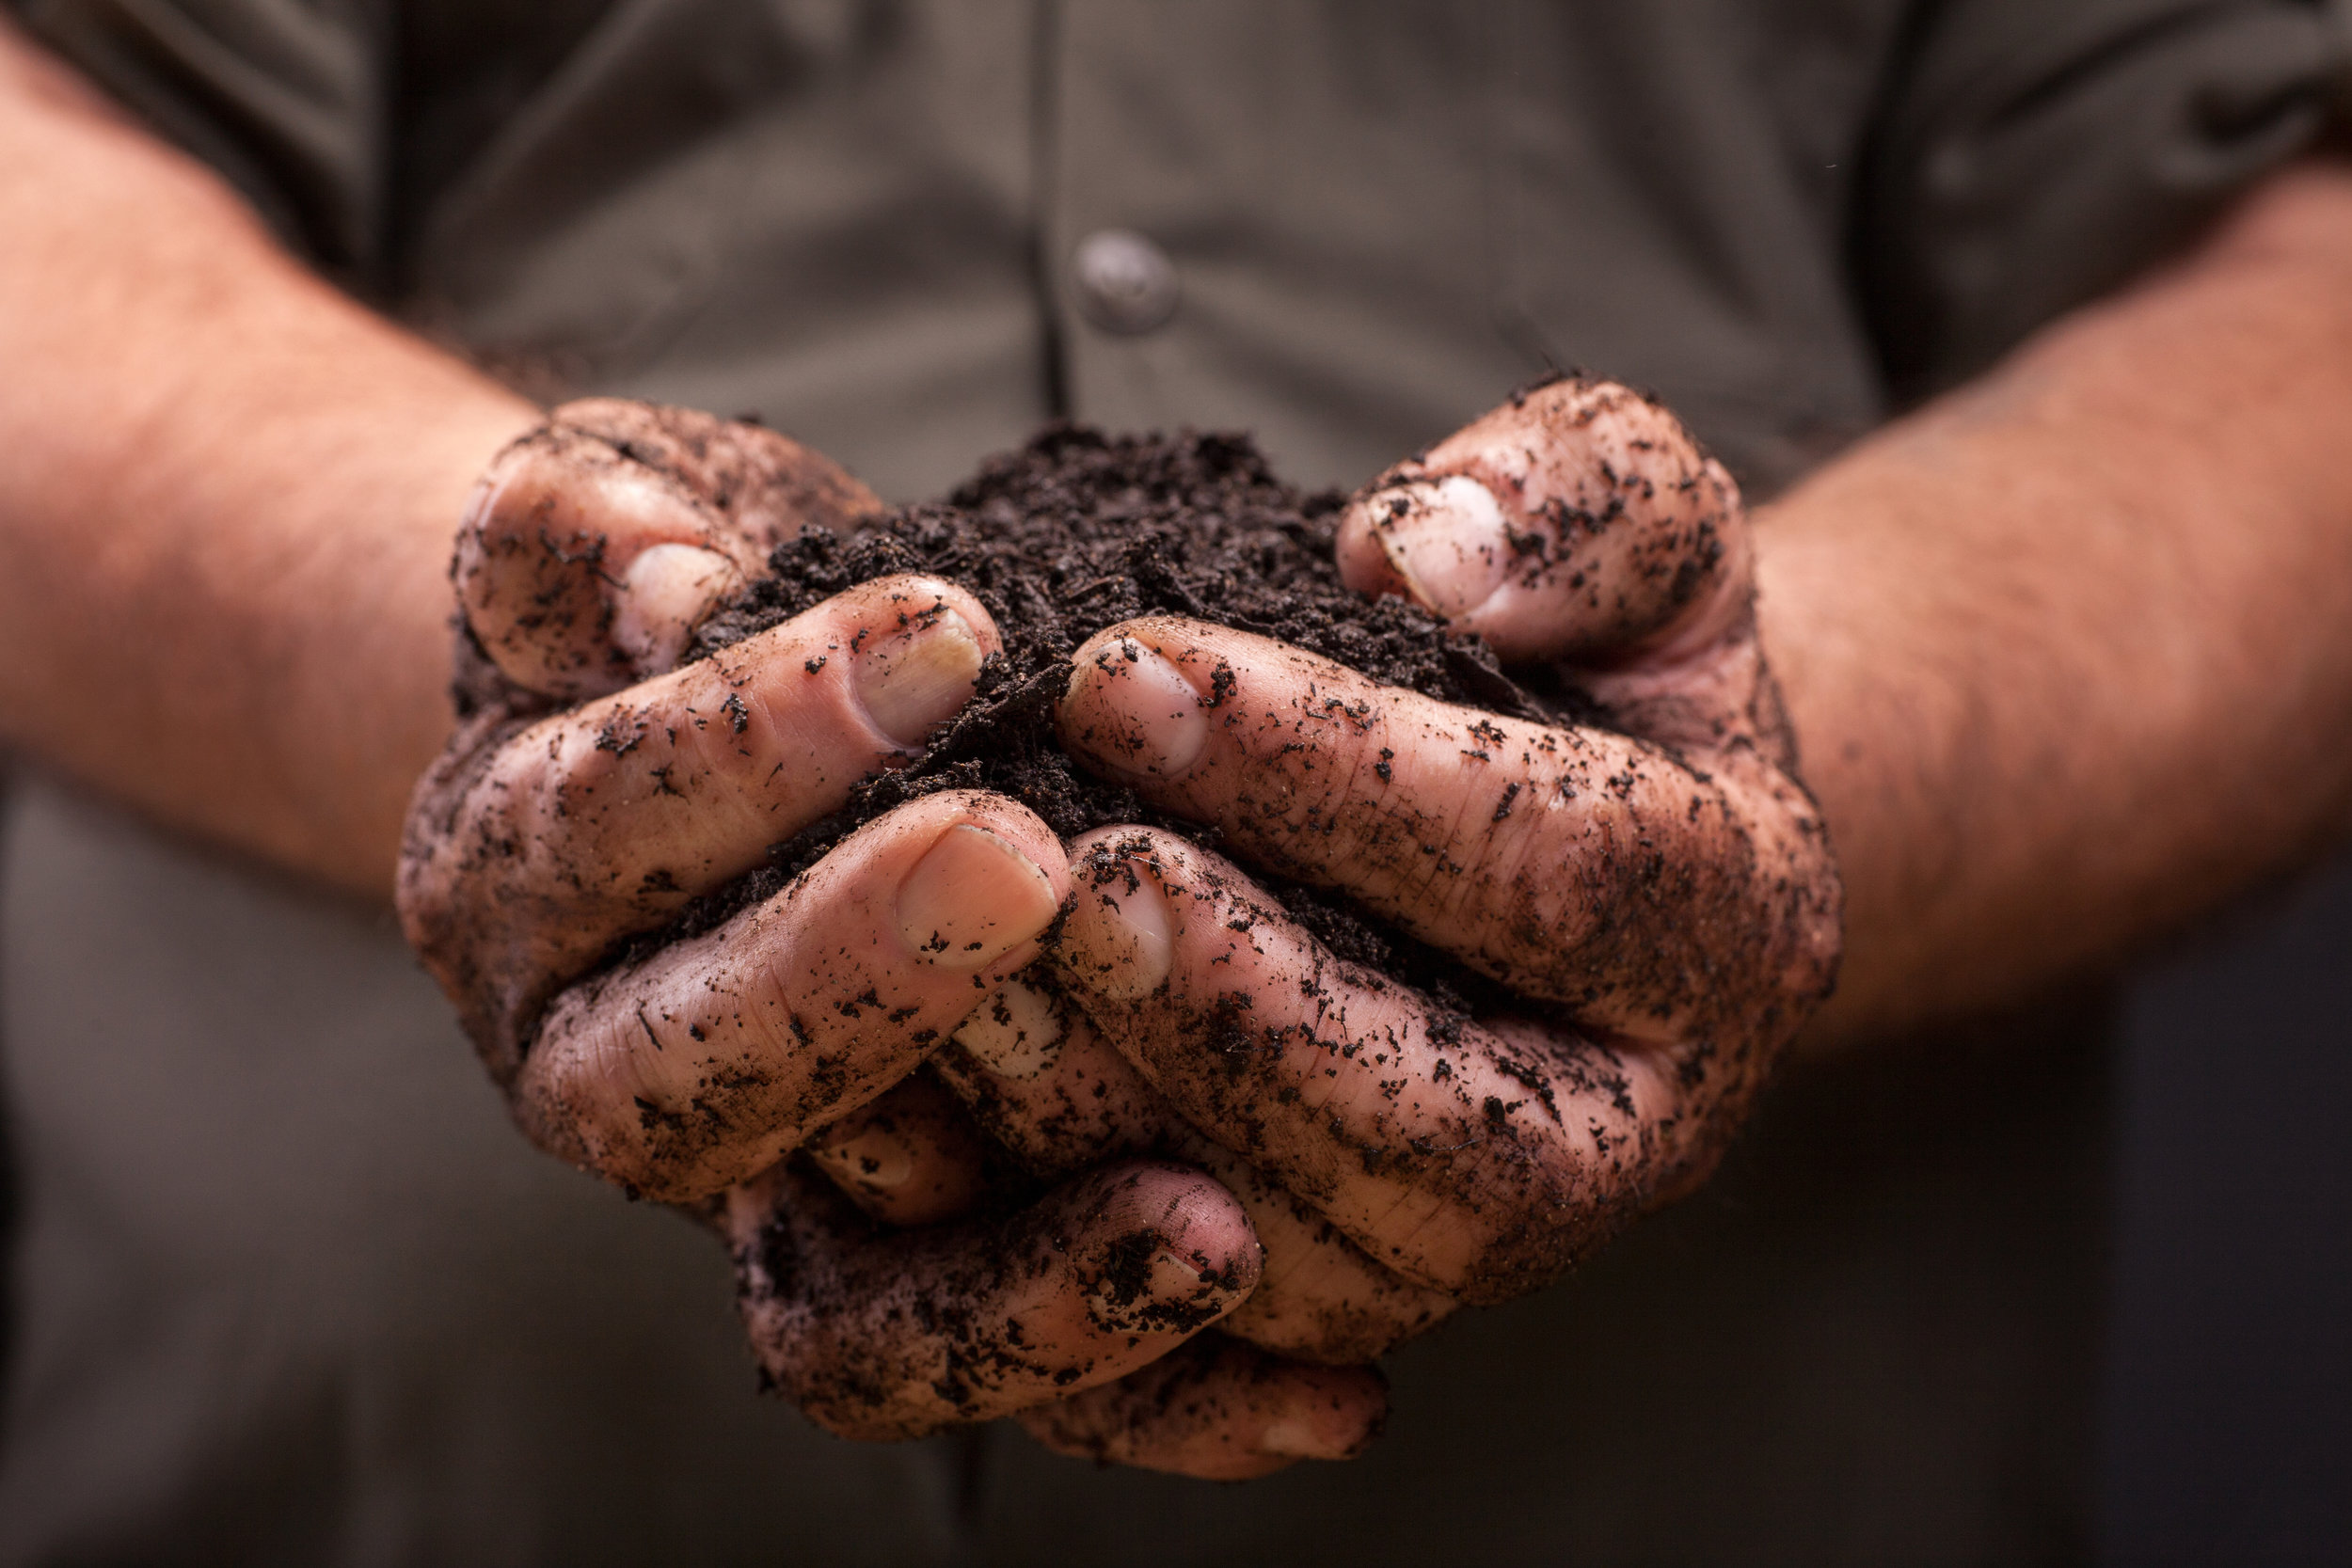 About - Find out about Full Cycle Organics, our methods, our services, and our premium organic compost.